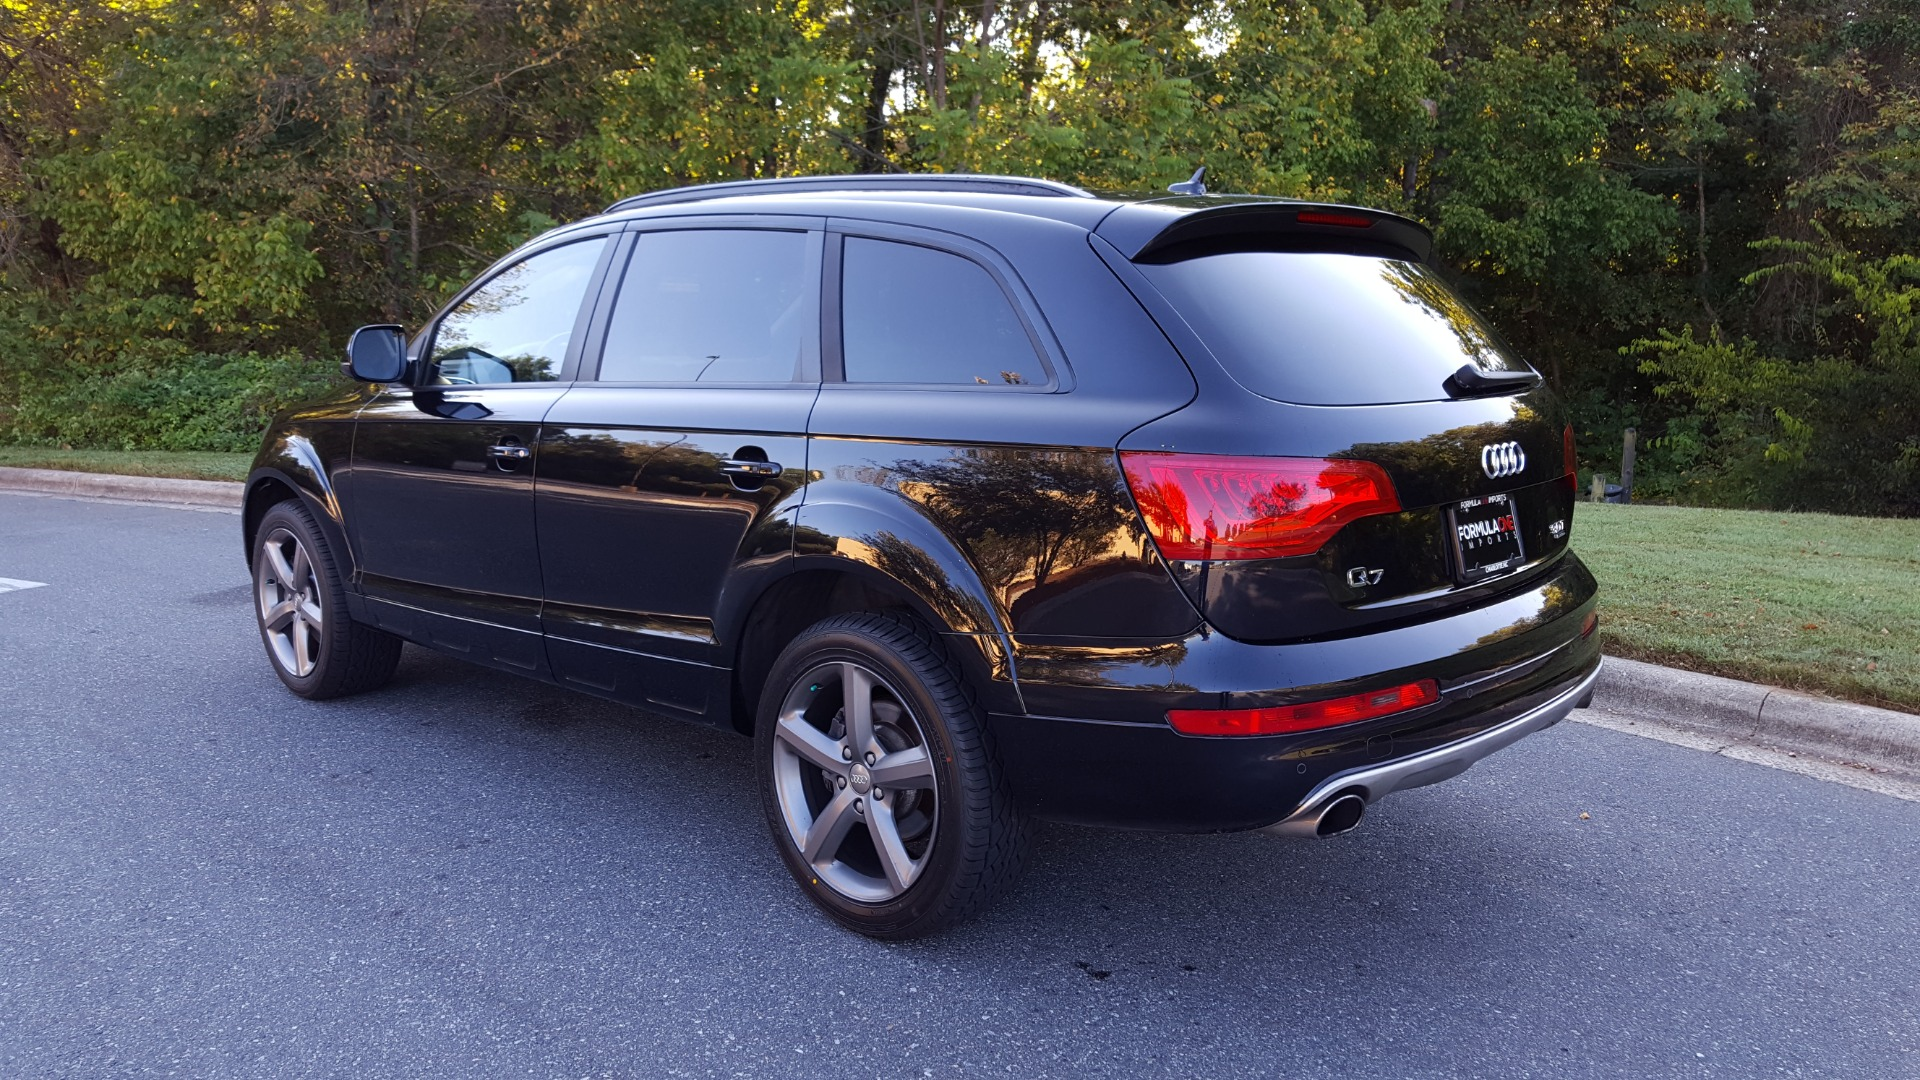 Used 2015 Audi Q7 3.0T PREMIUM PLUS TIPTRONIC / NAV / OFFROAD PLUS / WARM WEATHER / COLD WEAT for sale Sold at Formula Imports in Charlotte NC 28227 3